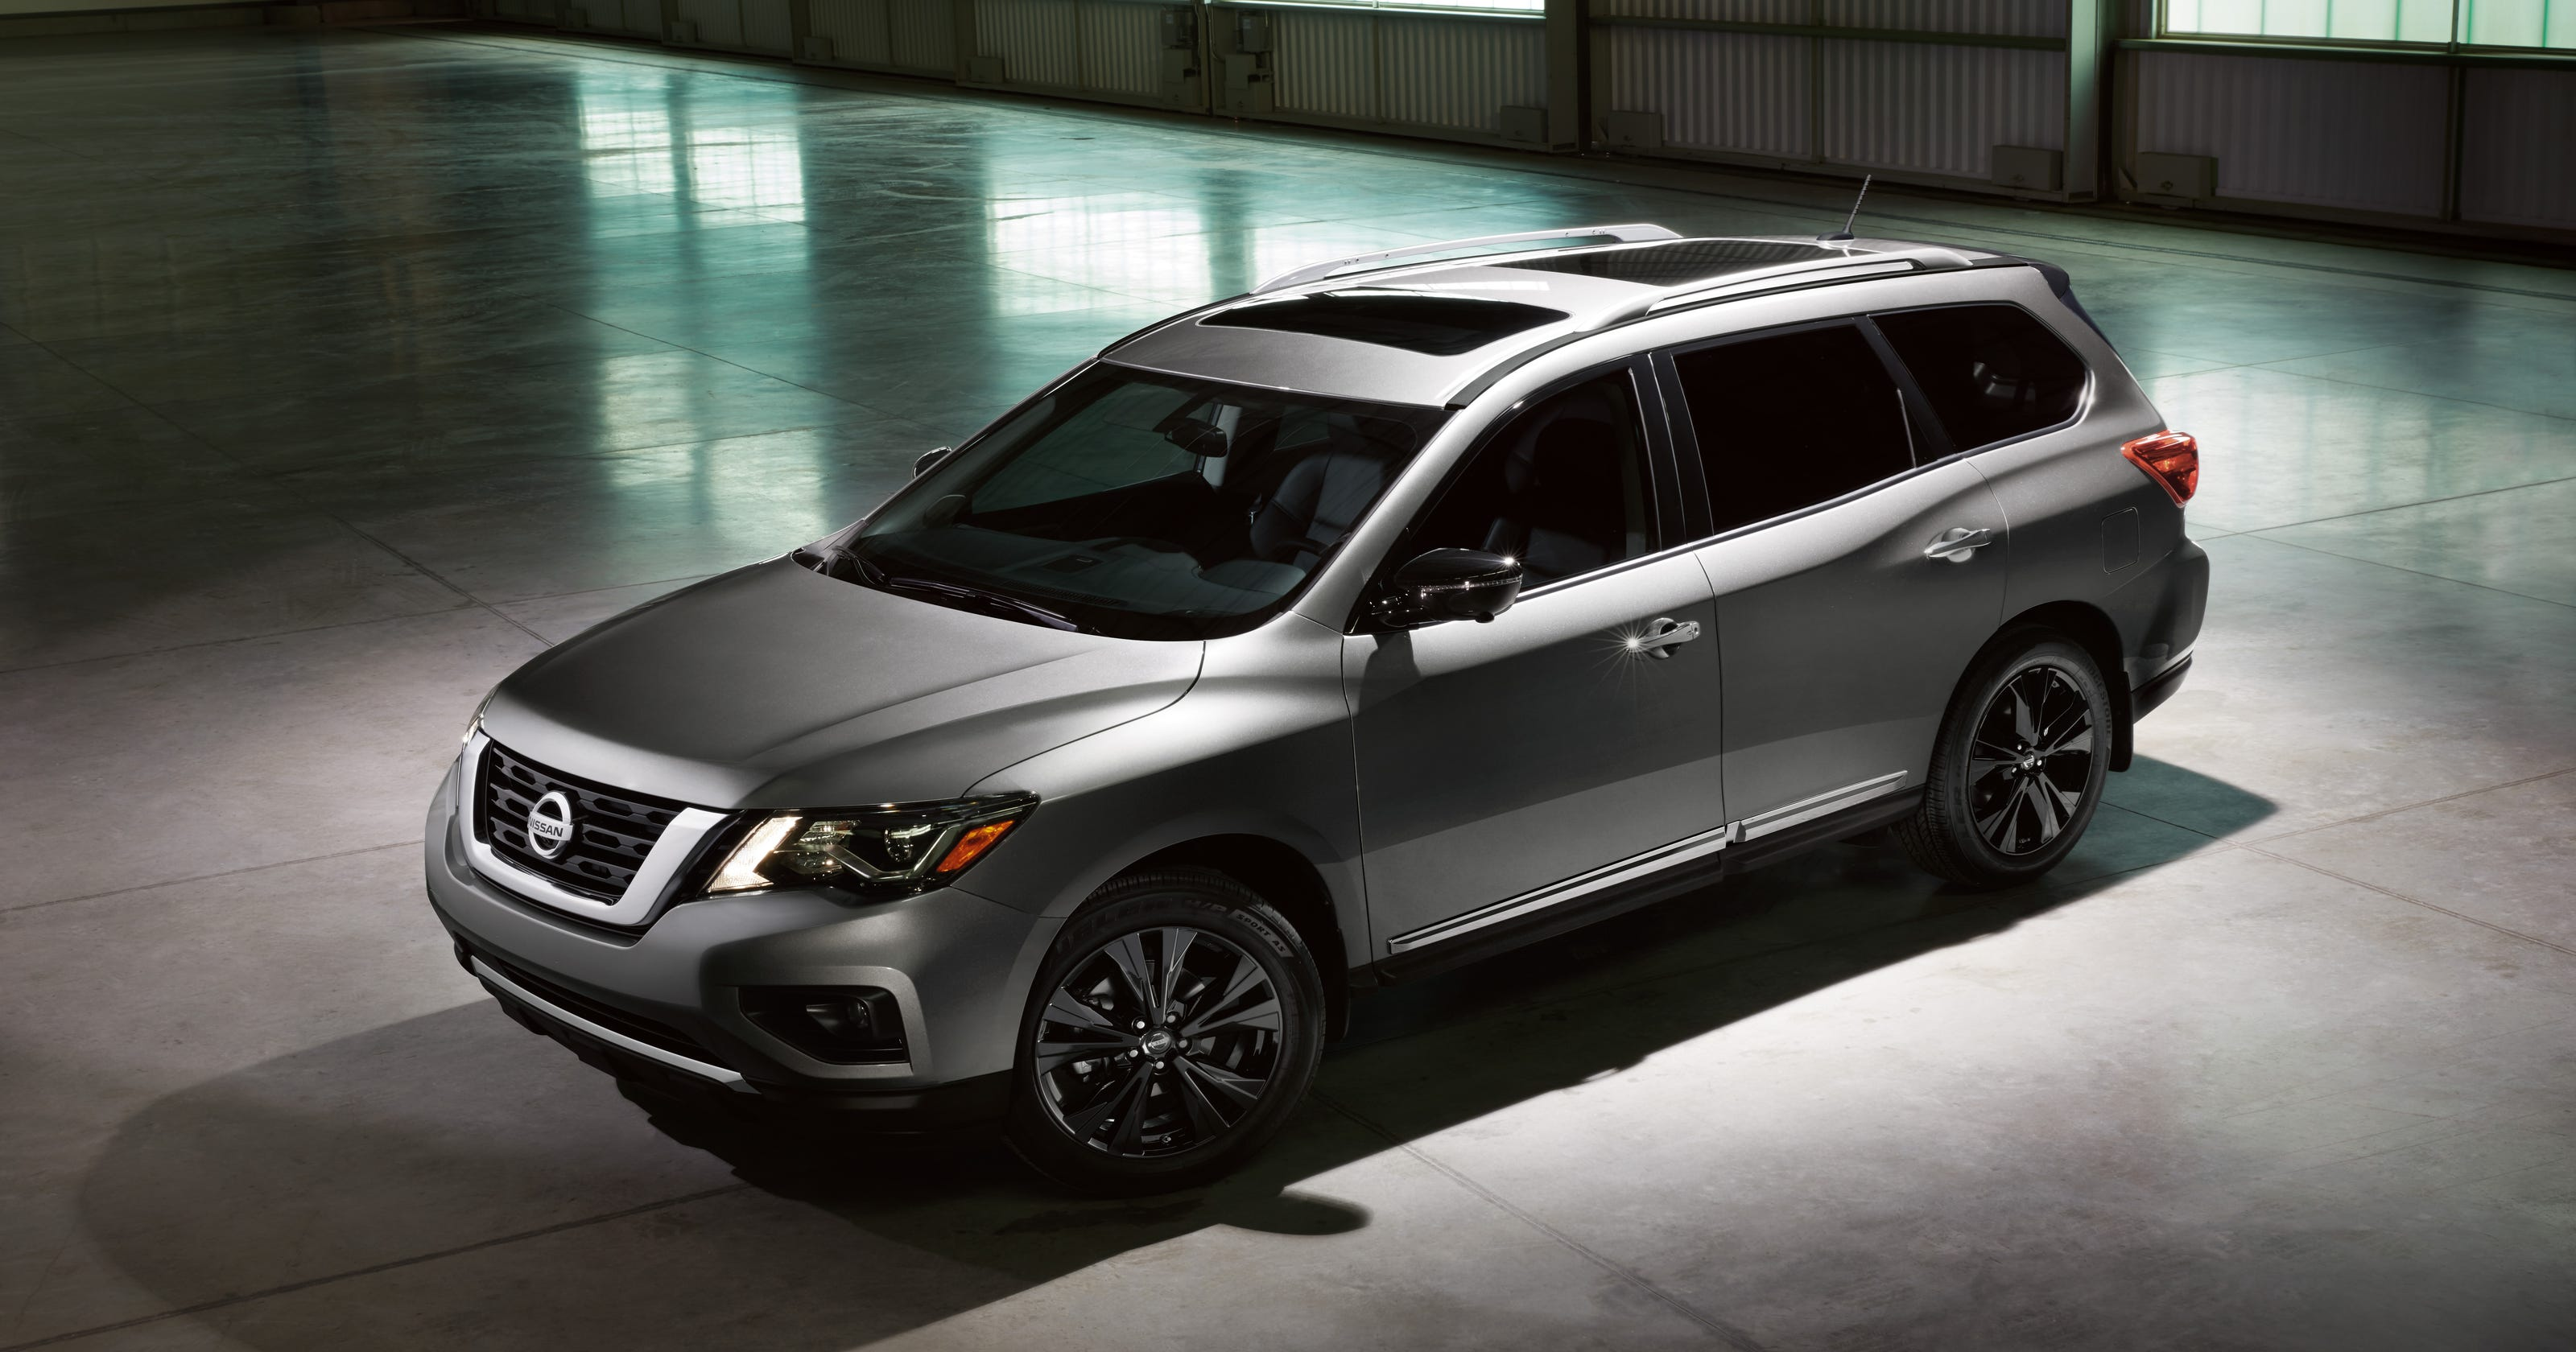 Nissan boosts price of hot-selling Pathfinder SUV for 2018